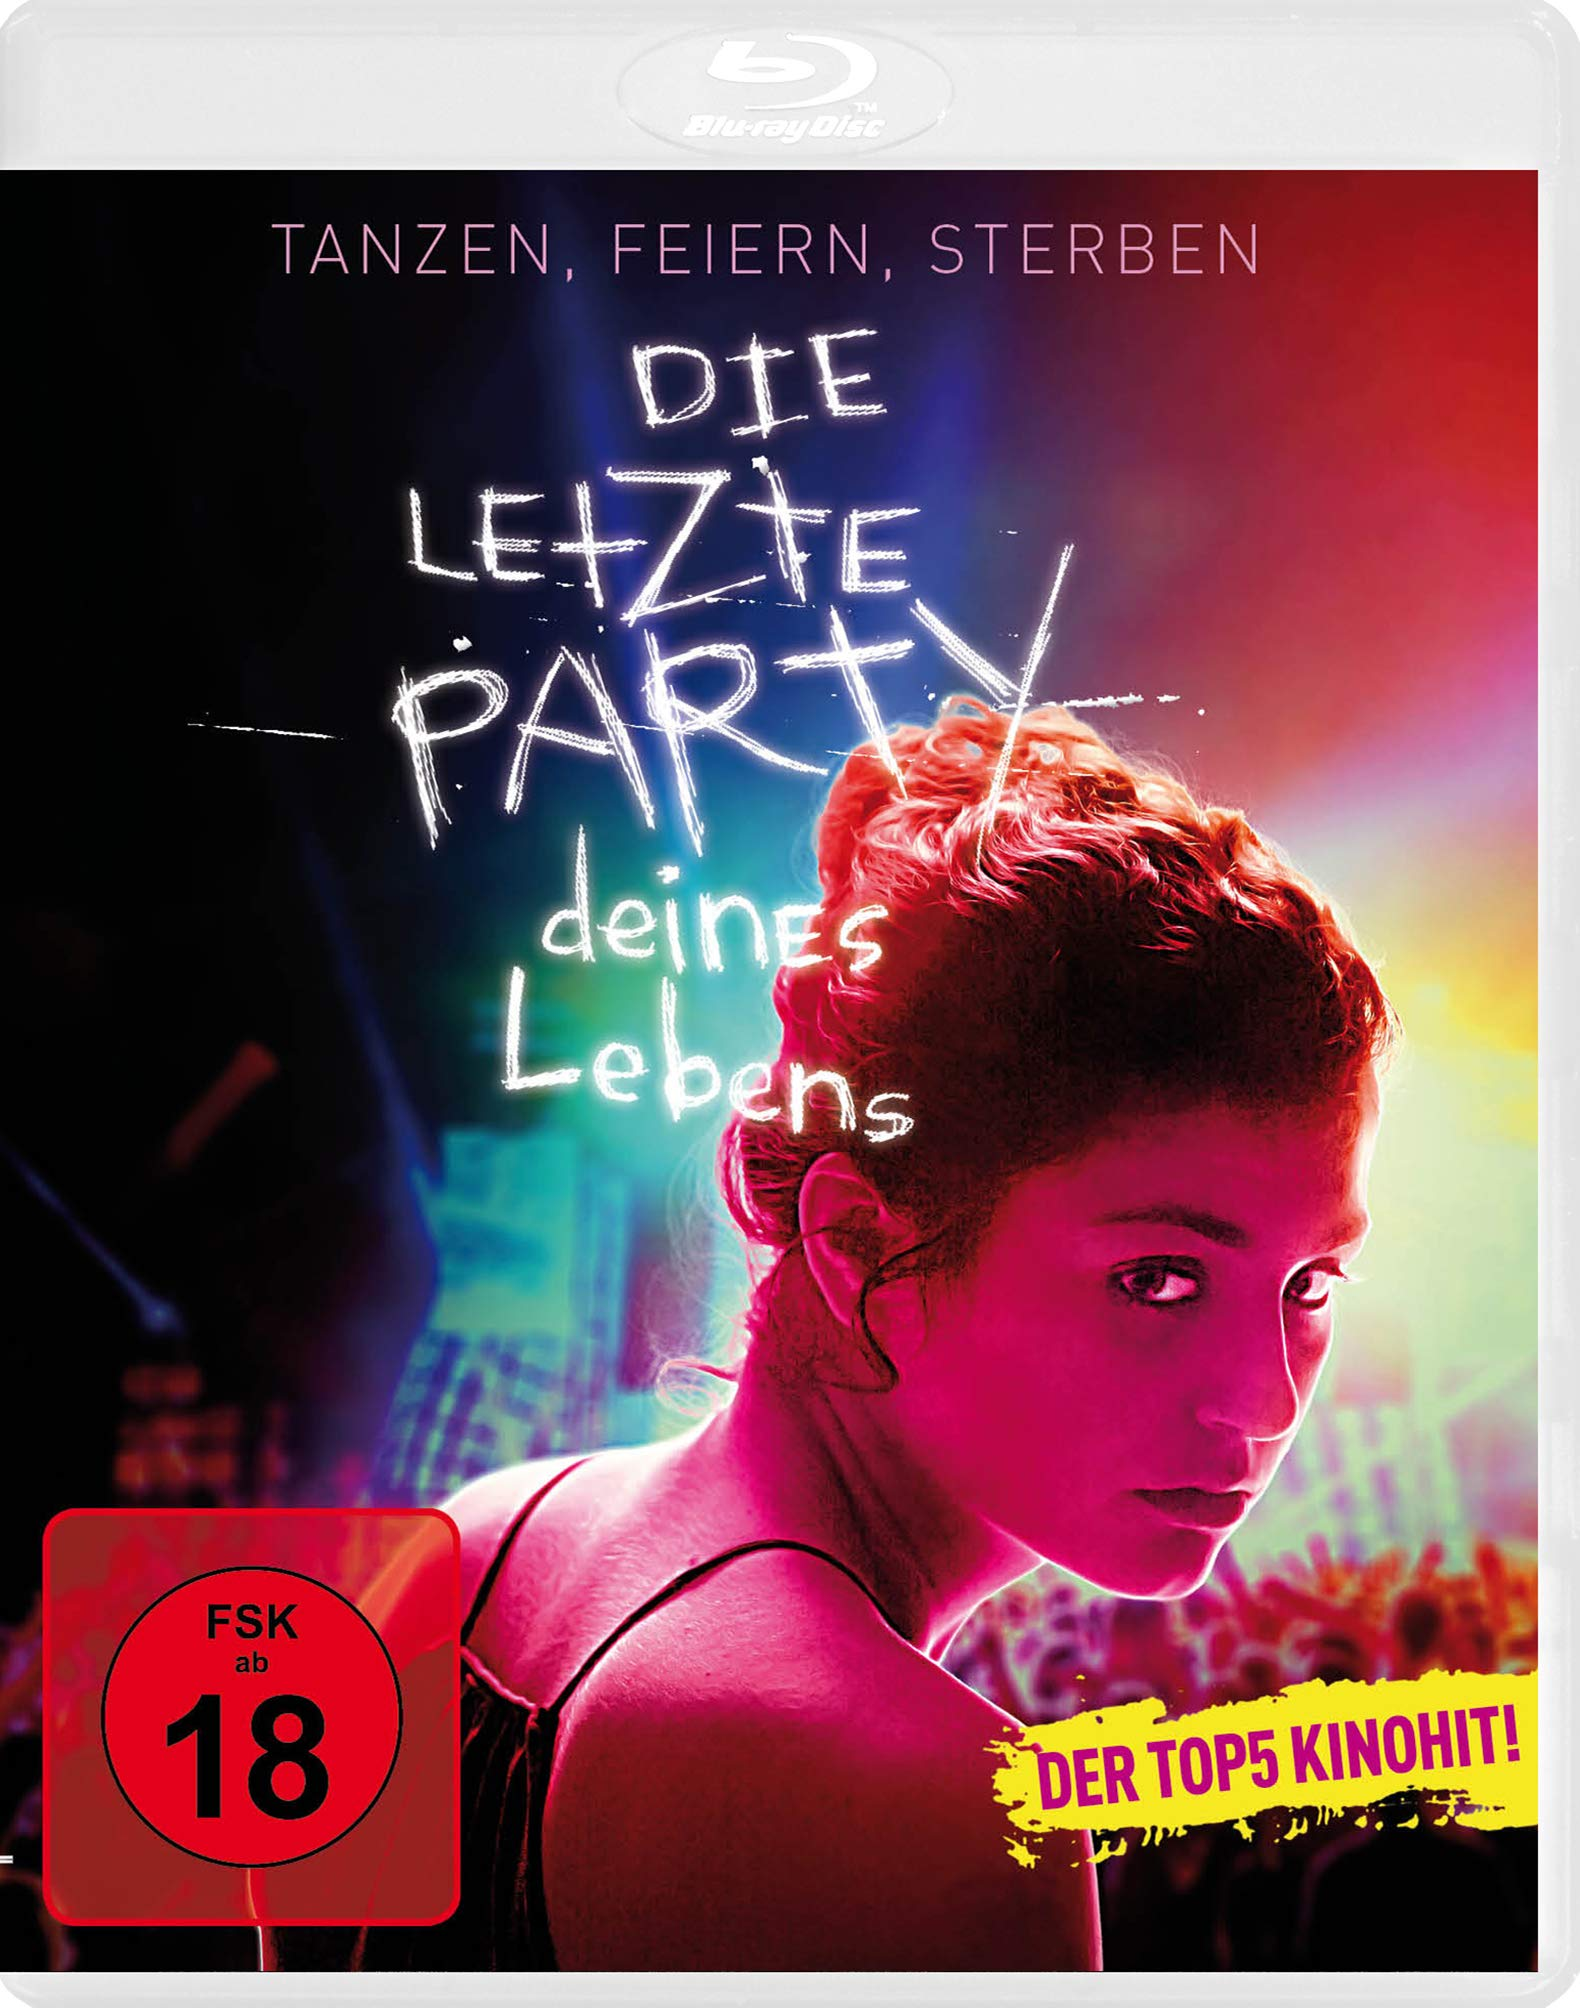 download Die.letzte.Party.deines.Lebens.2018.German.DTS.1080p.BluRay.x265-UNFIrED